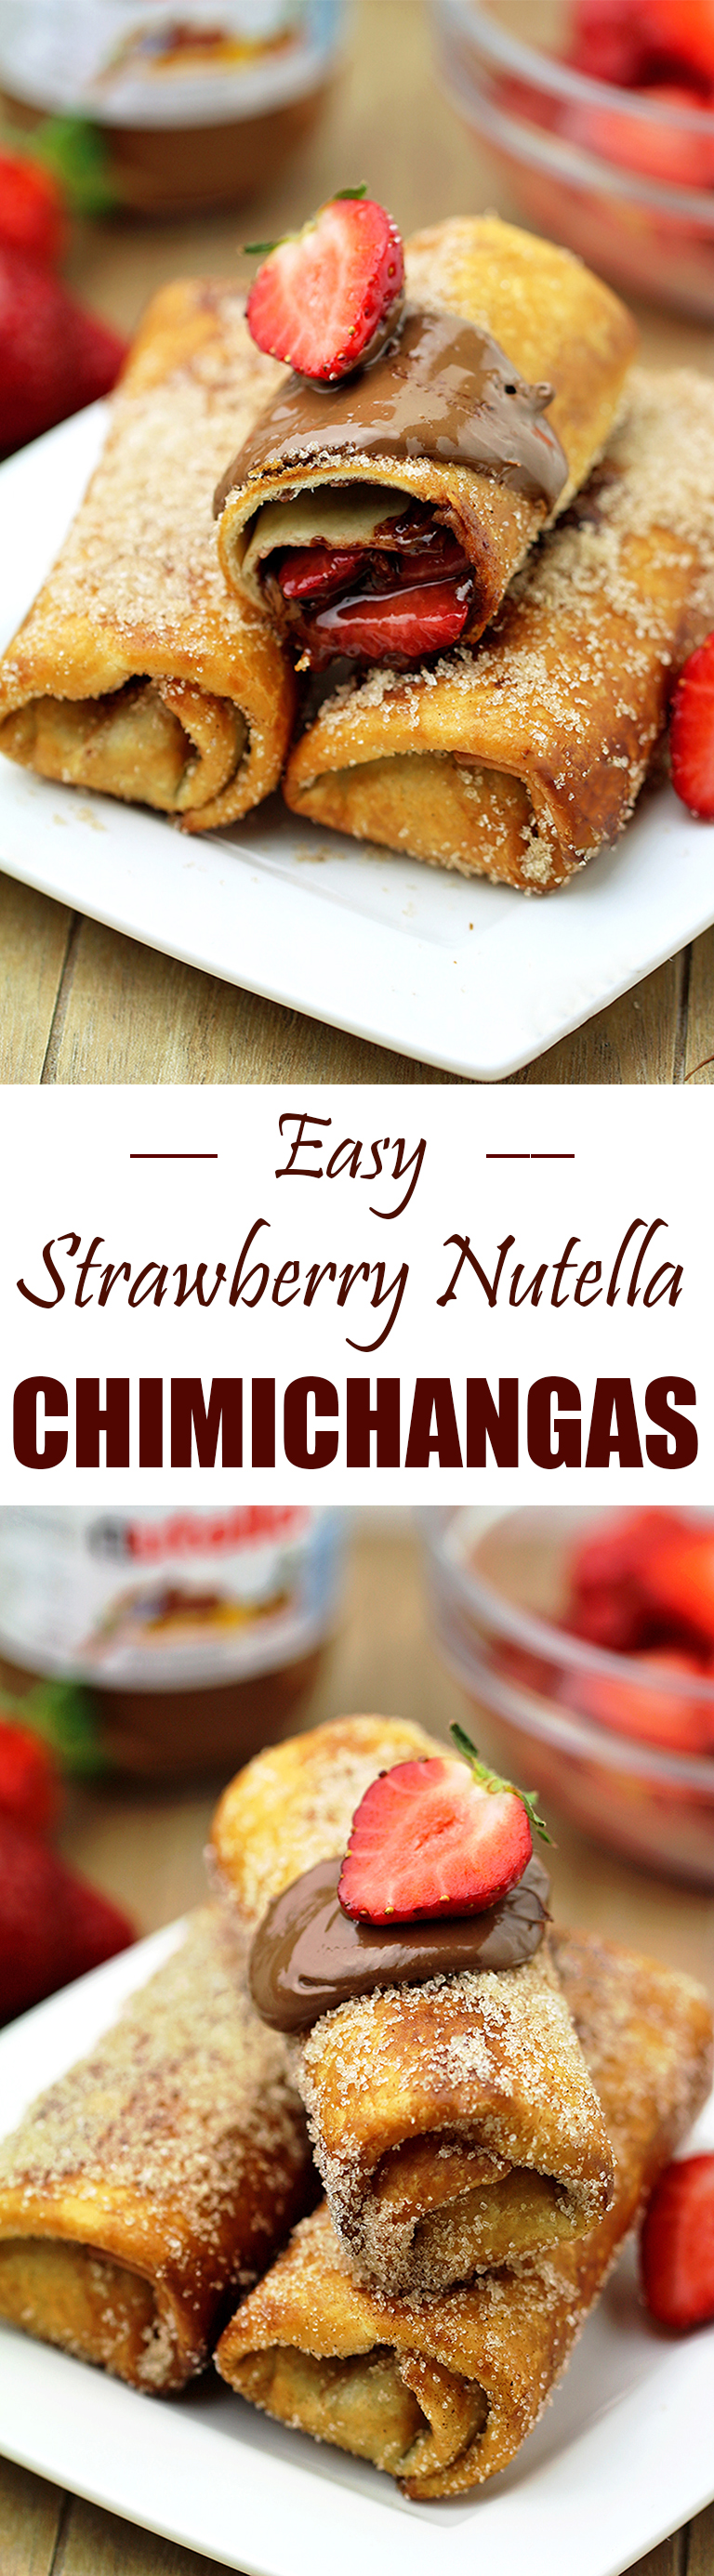 Easy Strawberry Nutella Chimichangas